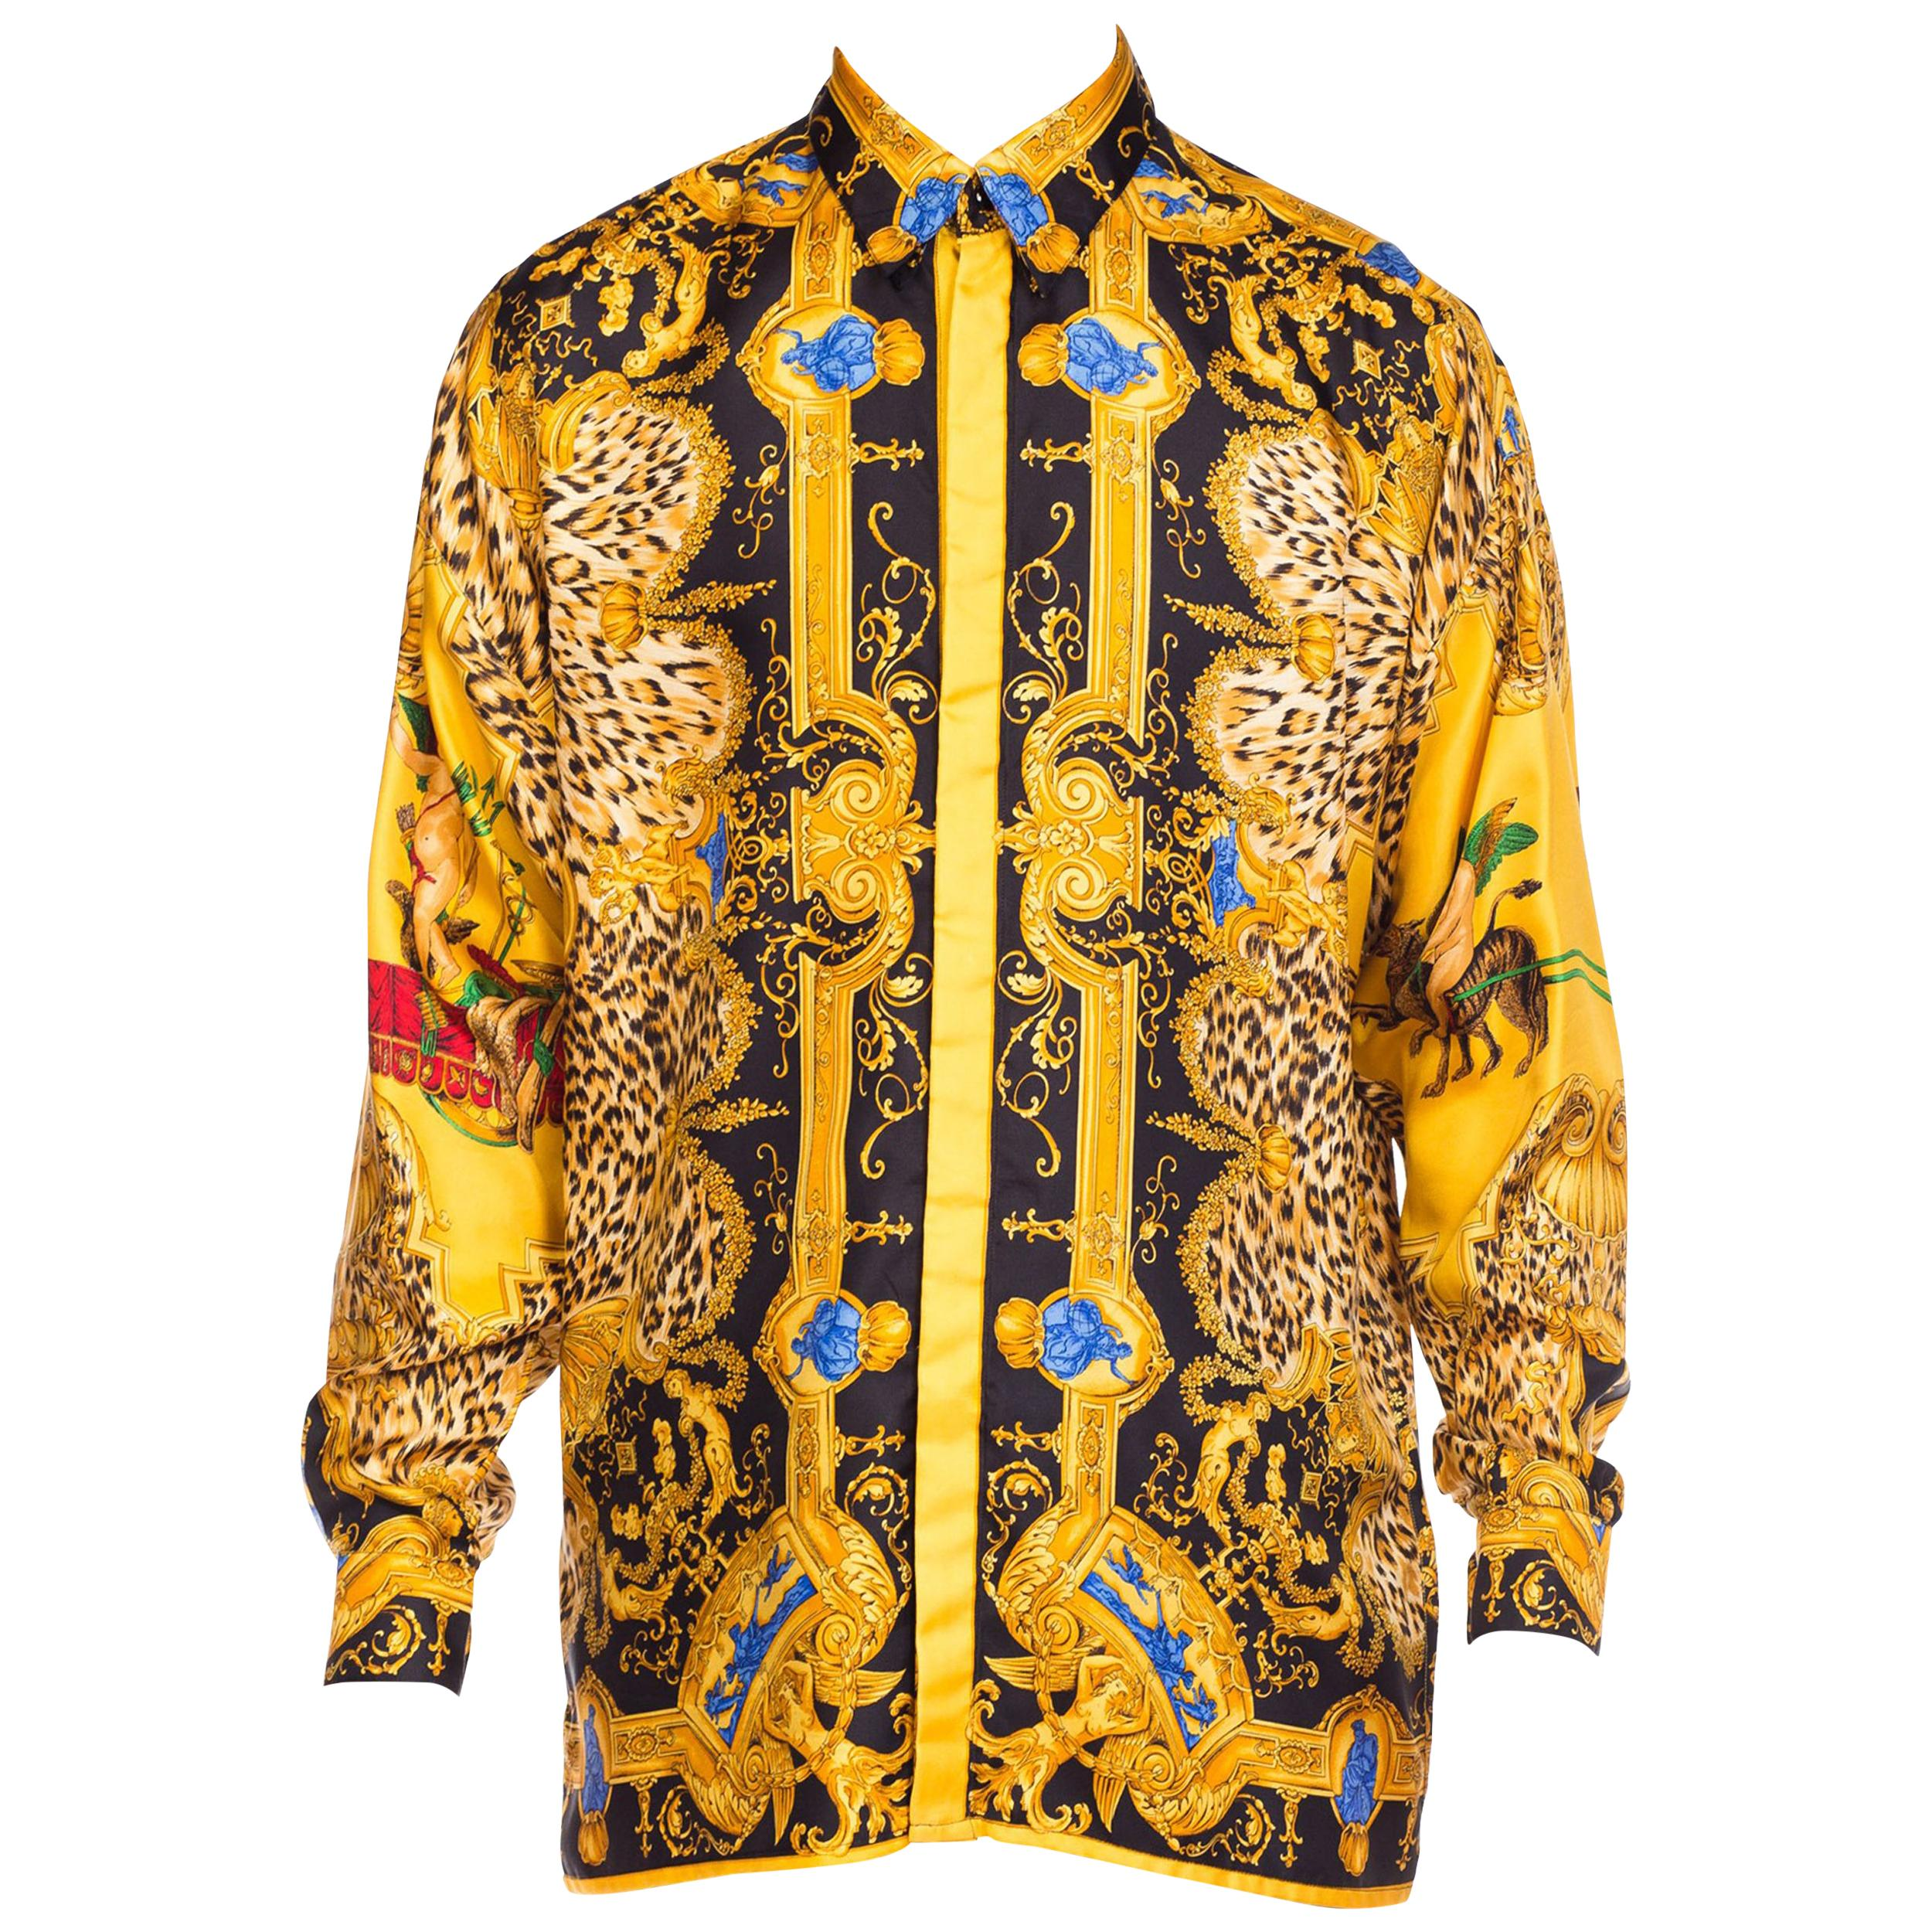 1990S GIANNI VERSACE Baroque And Leopard Printed Silk Shirt Top